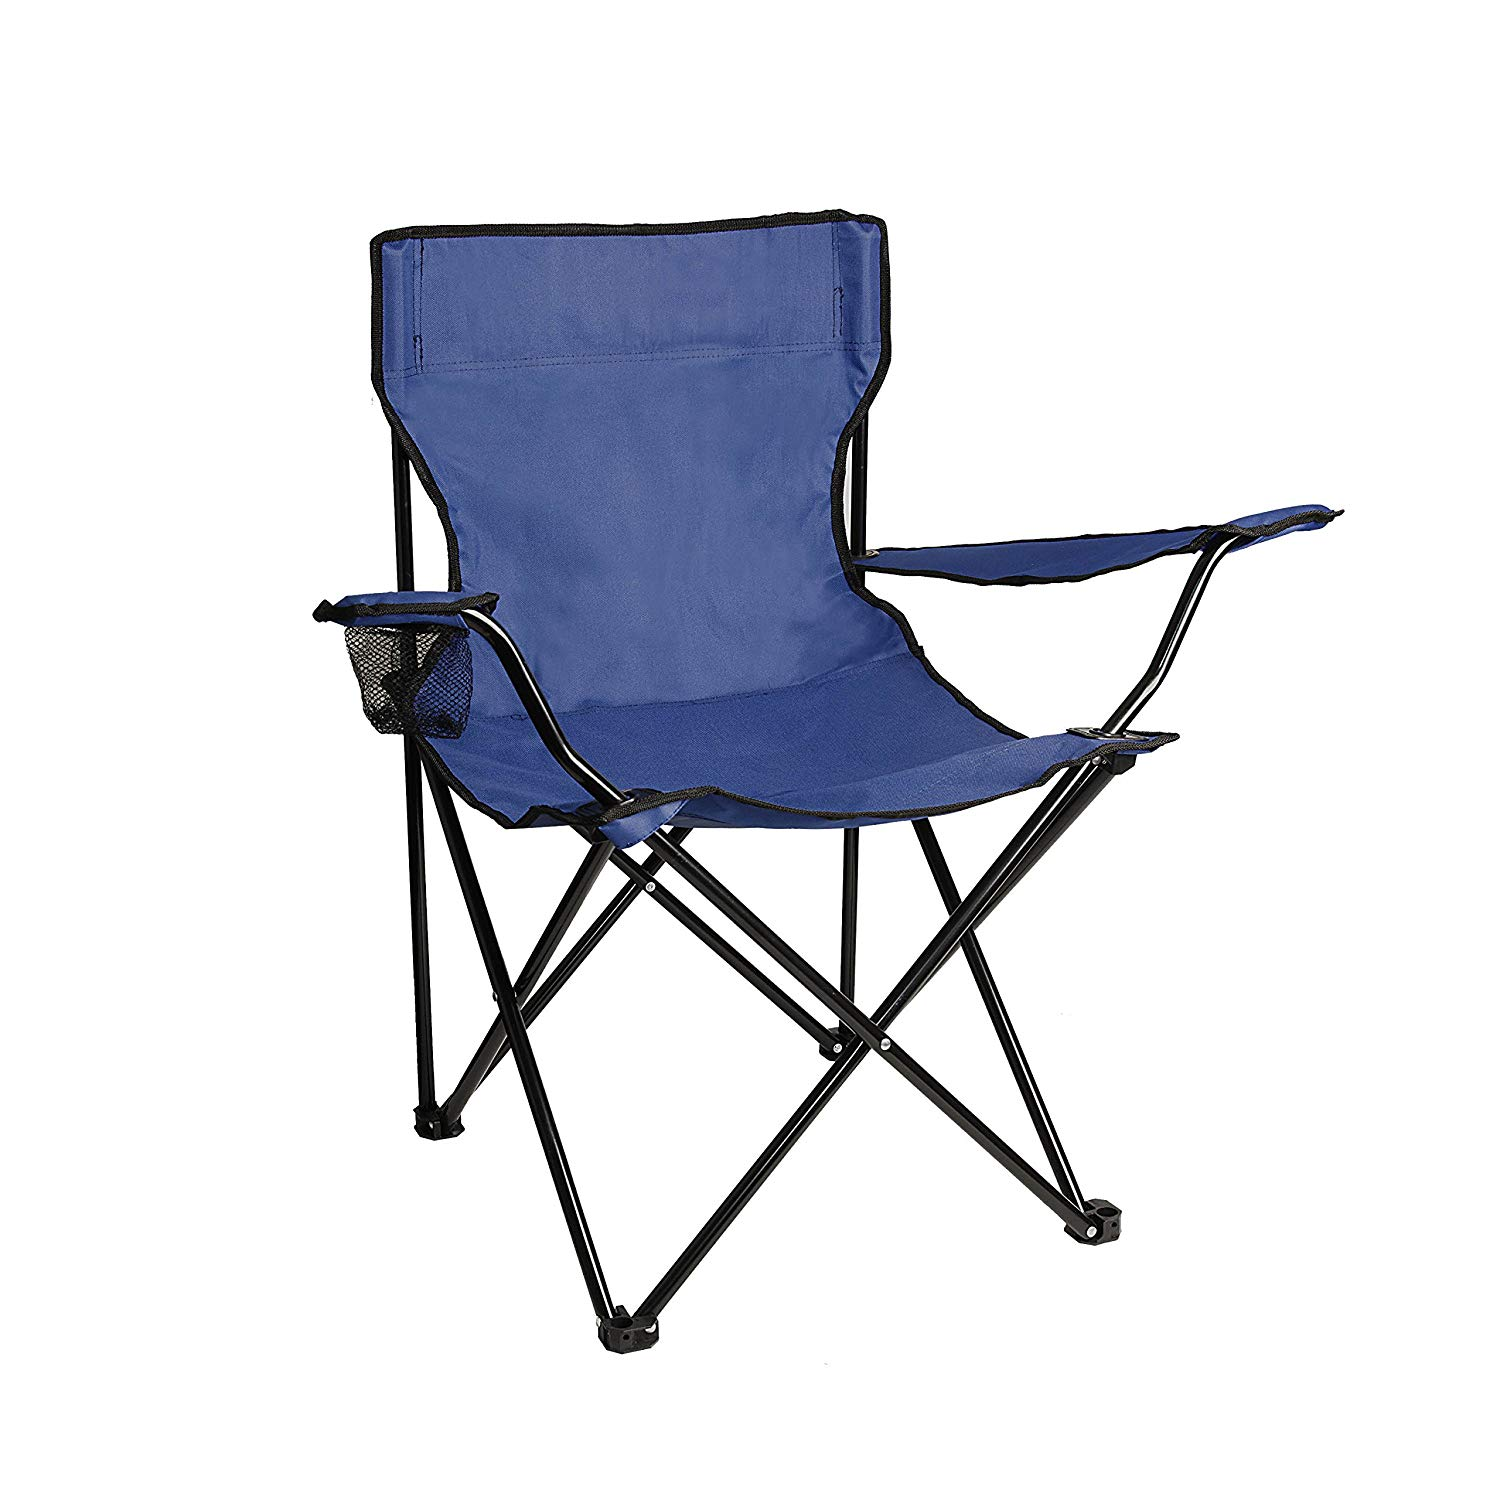 BC01 Foldable Camping, Hiking Beach Chair, Outdoor Picnic Lounge, Patio Lawn Gar